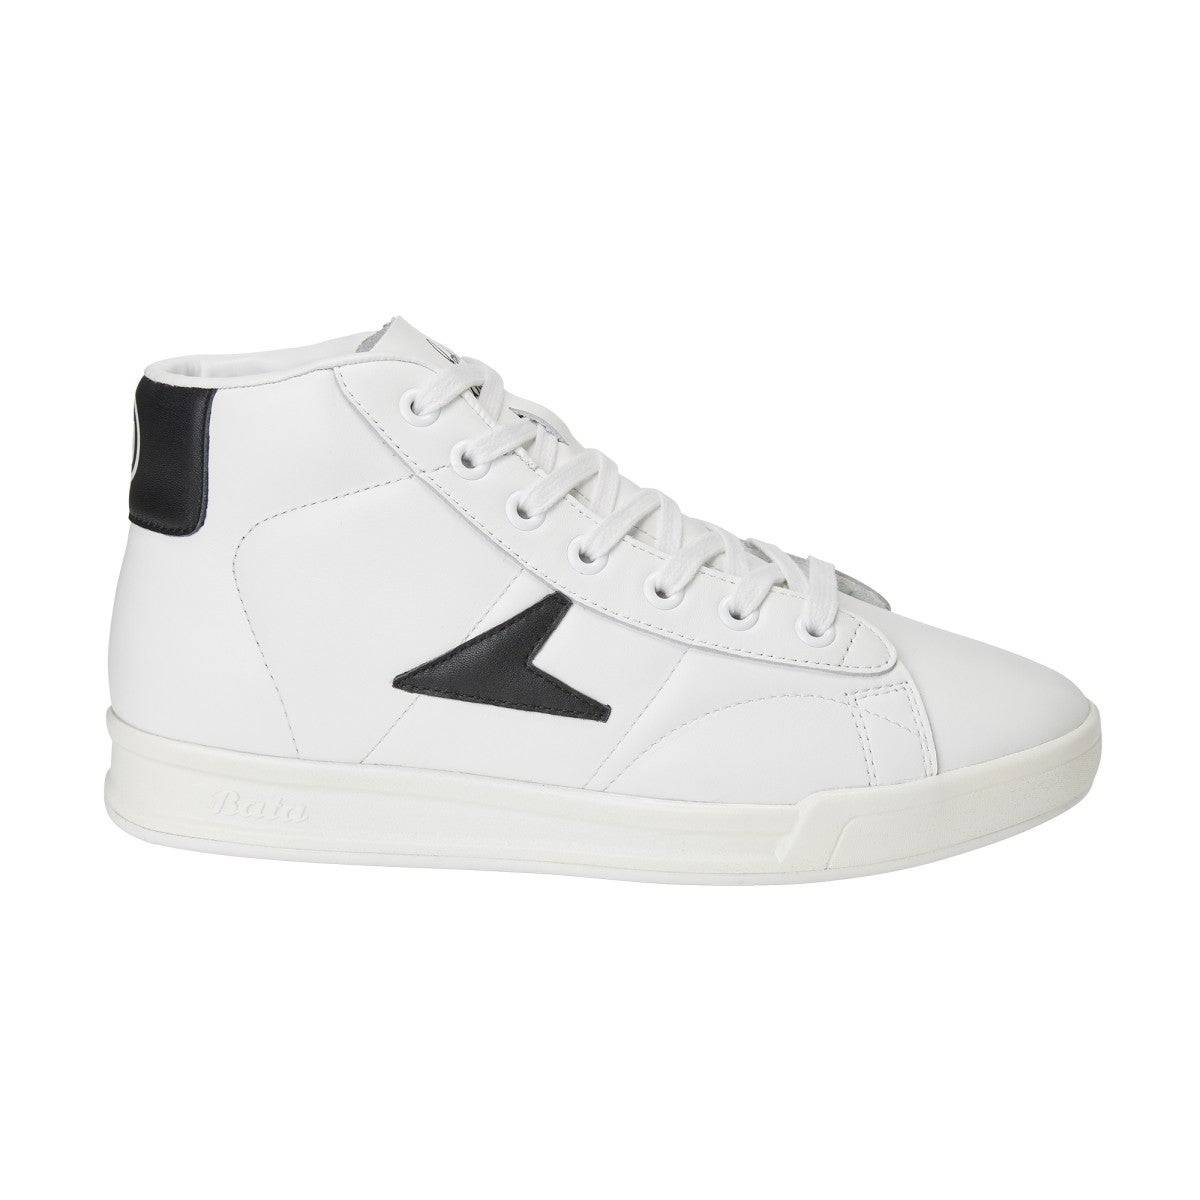 Wilson John Wooden Classic High Top Shoes in White / Black - Size: 9 M  - Unisex - White/Black - Size: 9 M